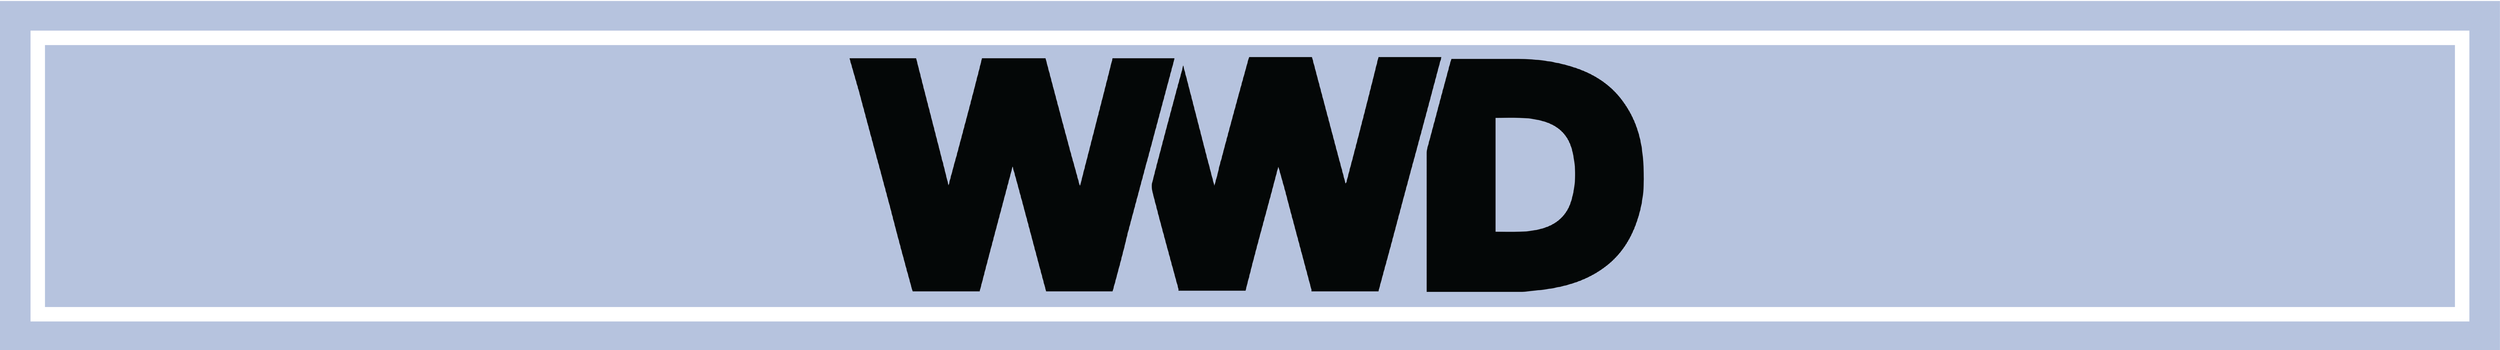 wwd_banner.png